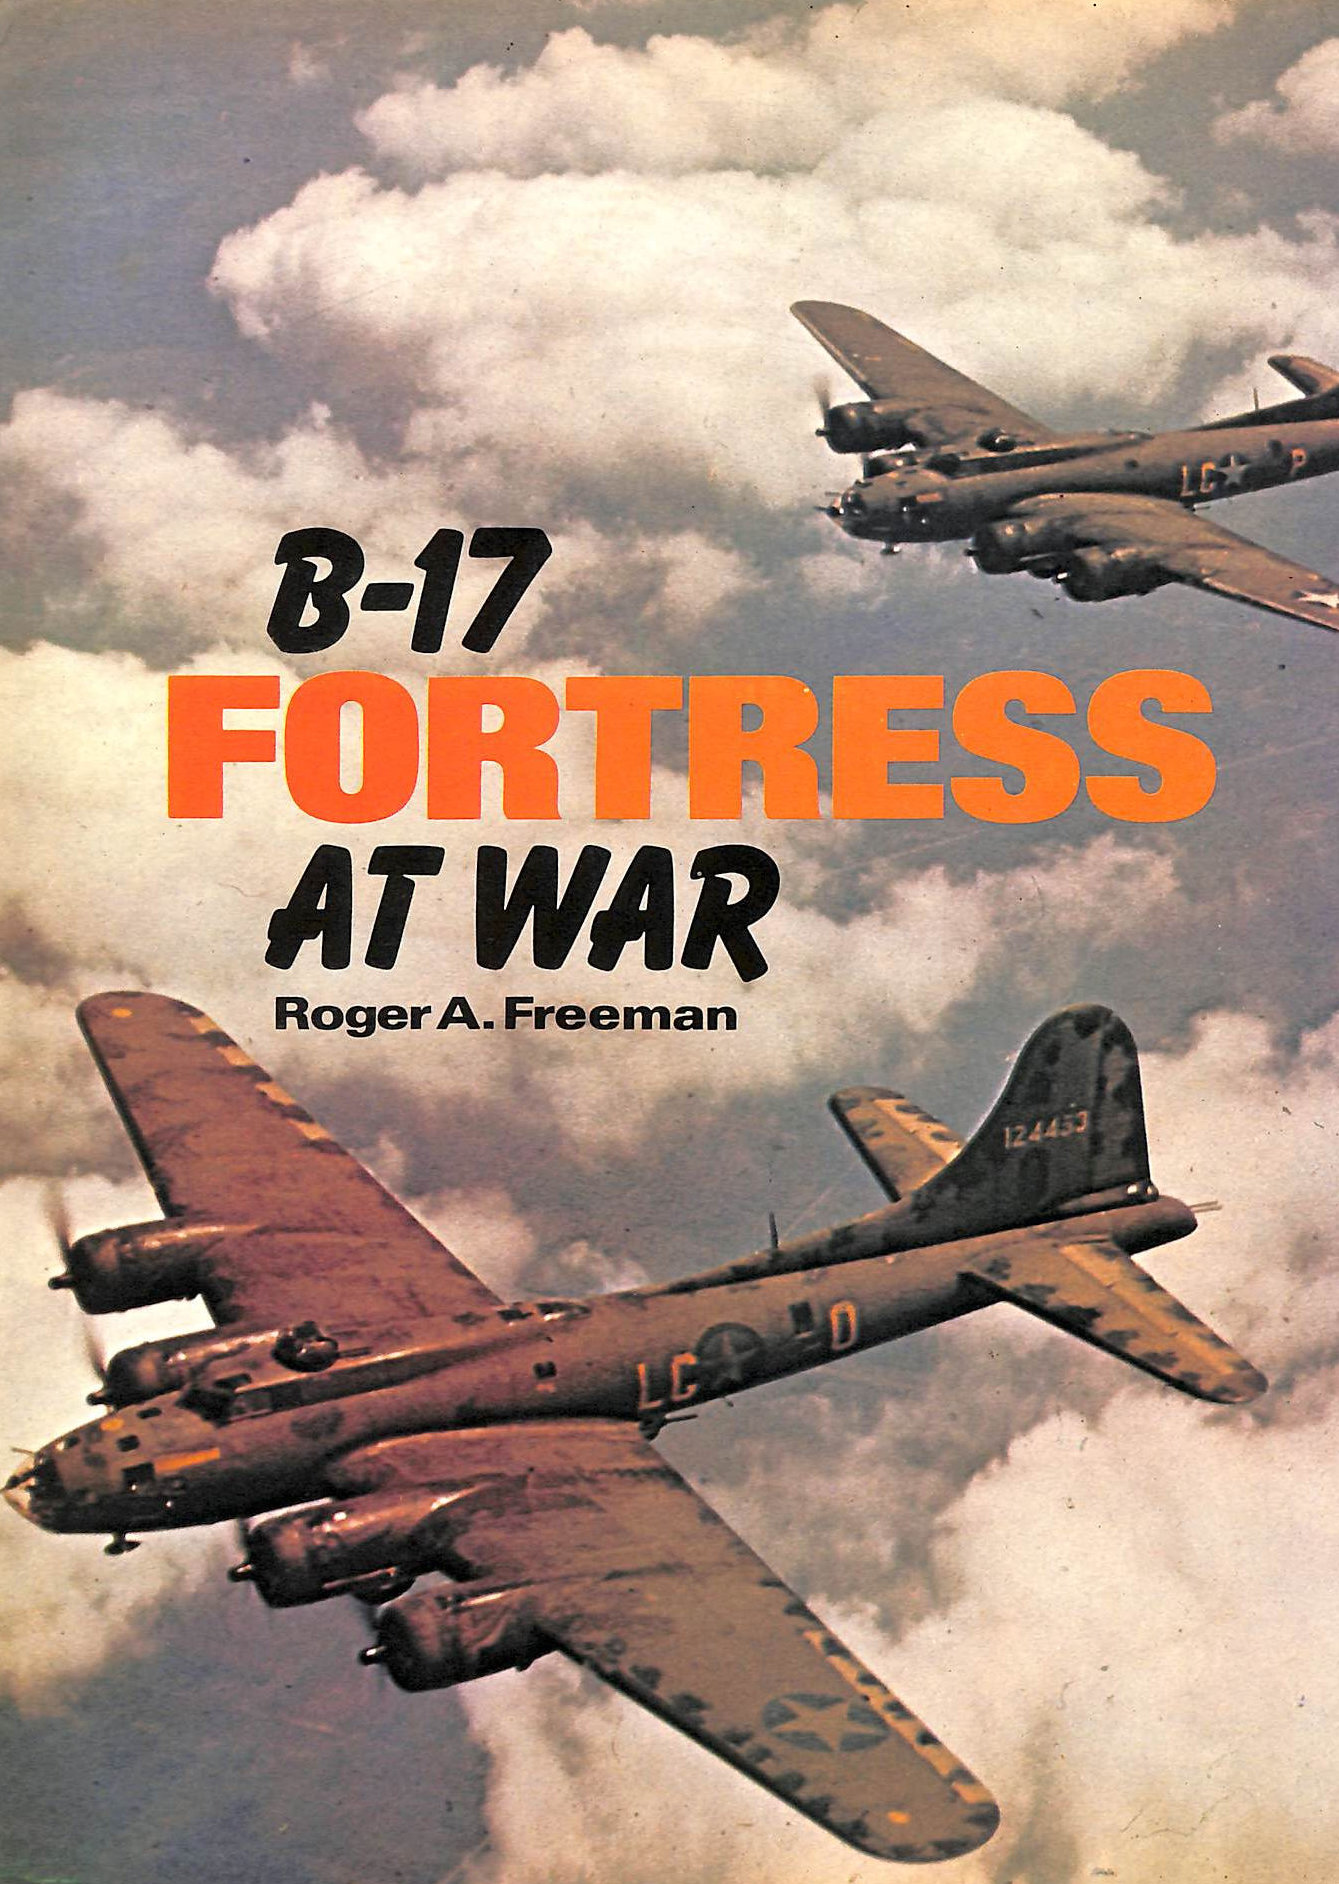 Image for B-17 Fortress at War